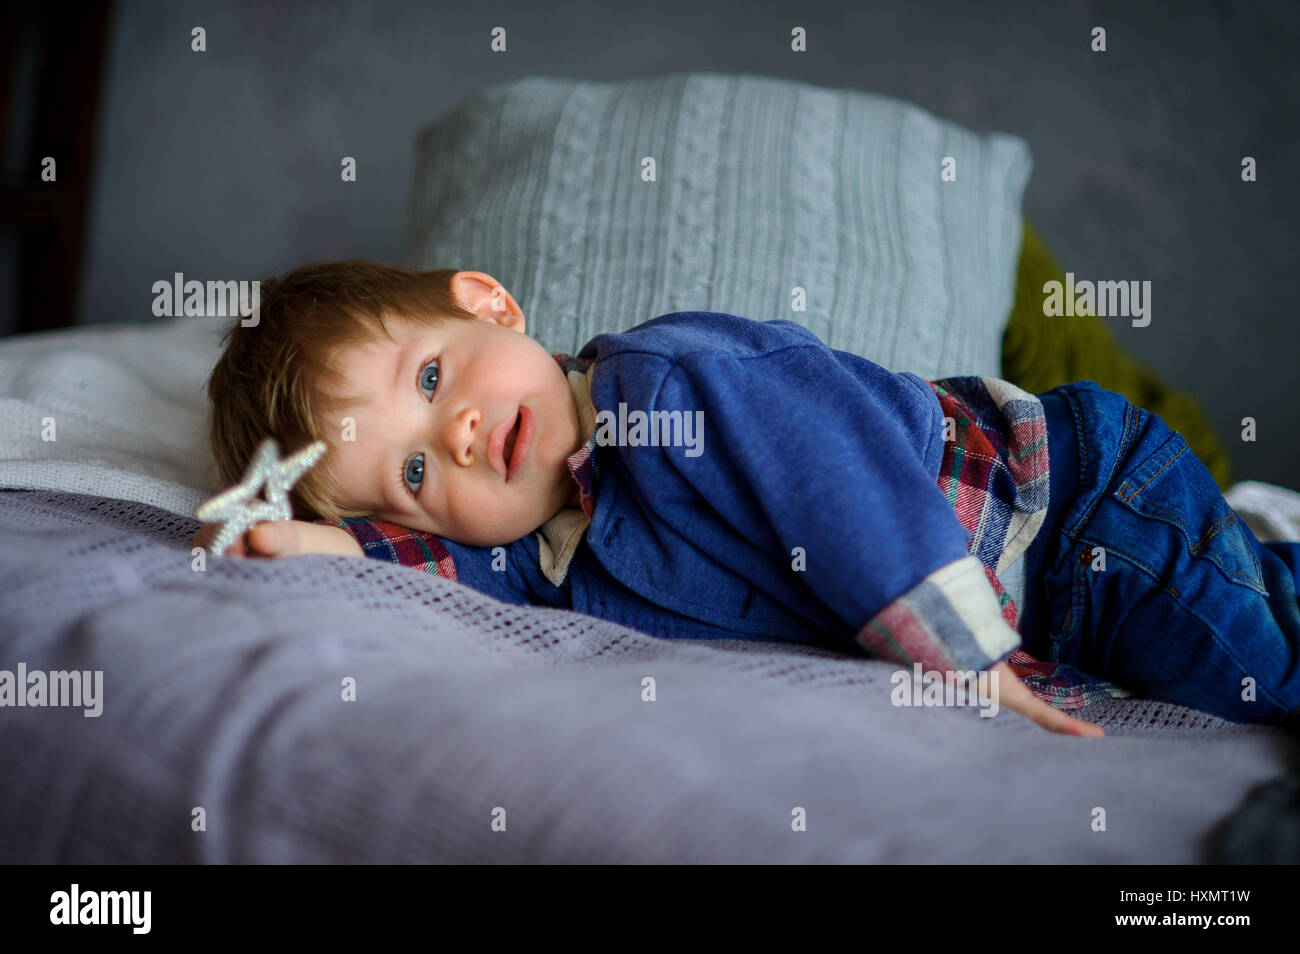 The little boy was tired of a game. The kid has lain down on a pillow. He is sleepy. In a hand a toy. Stock Photo